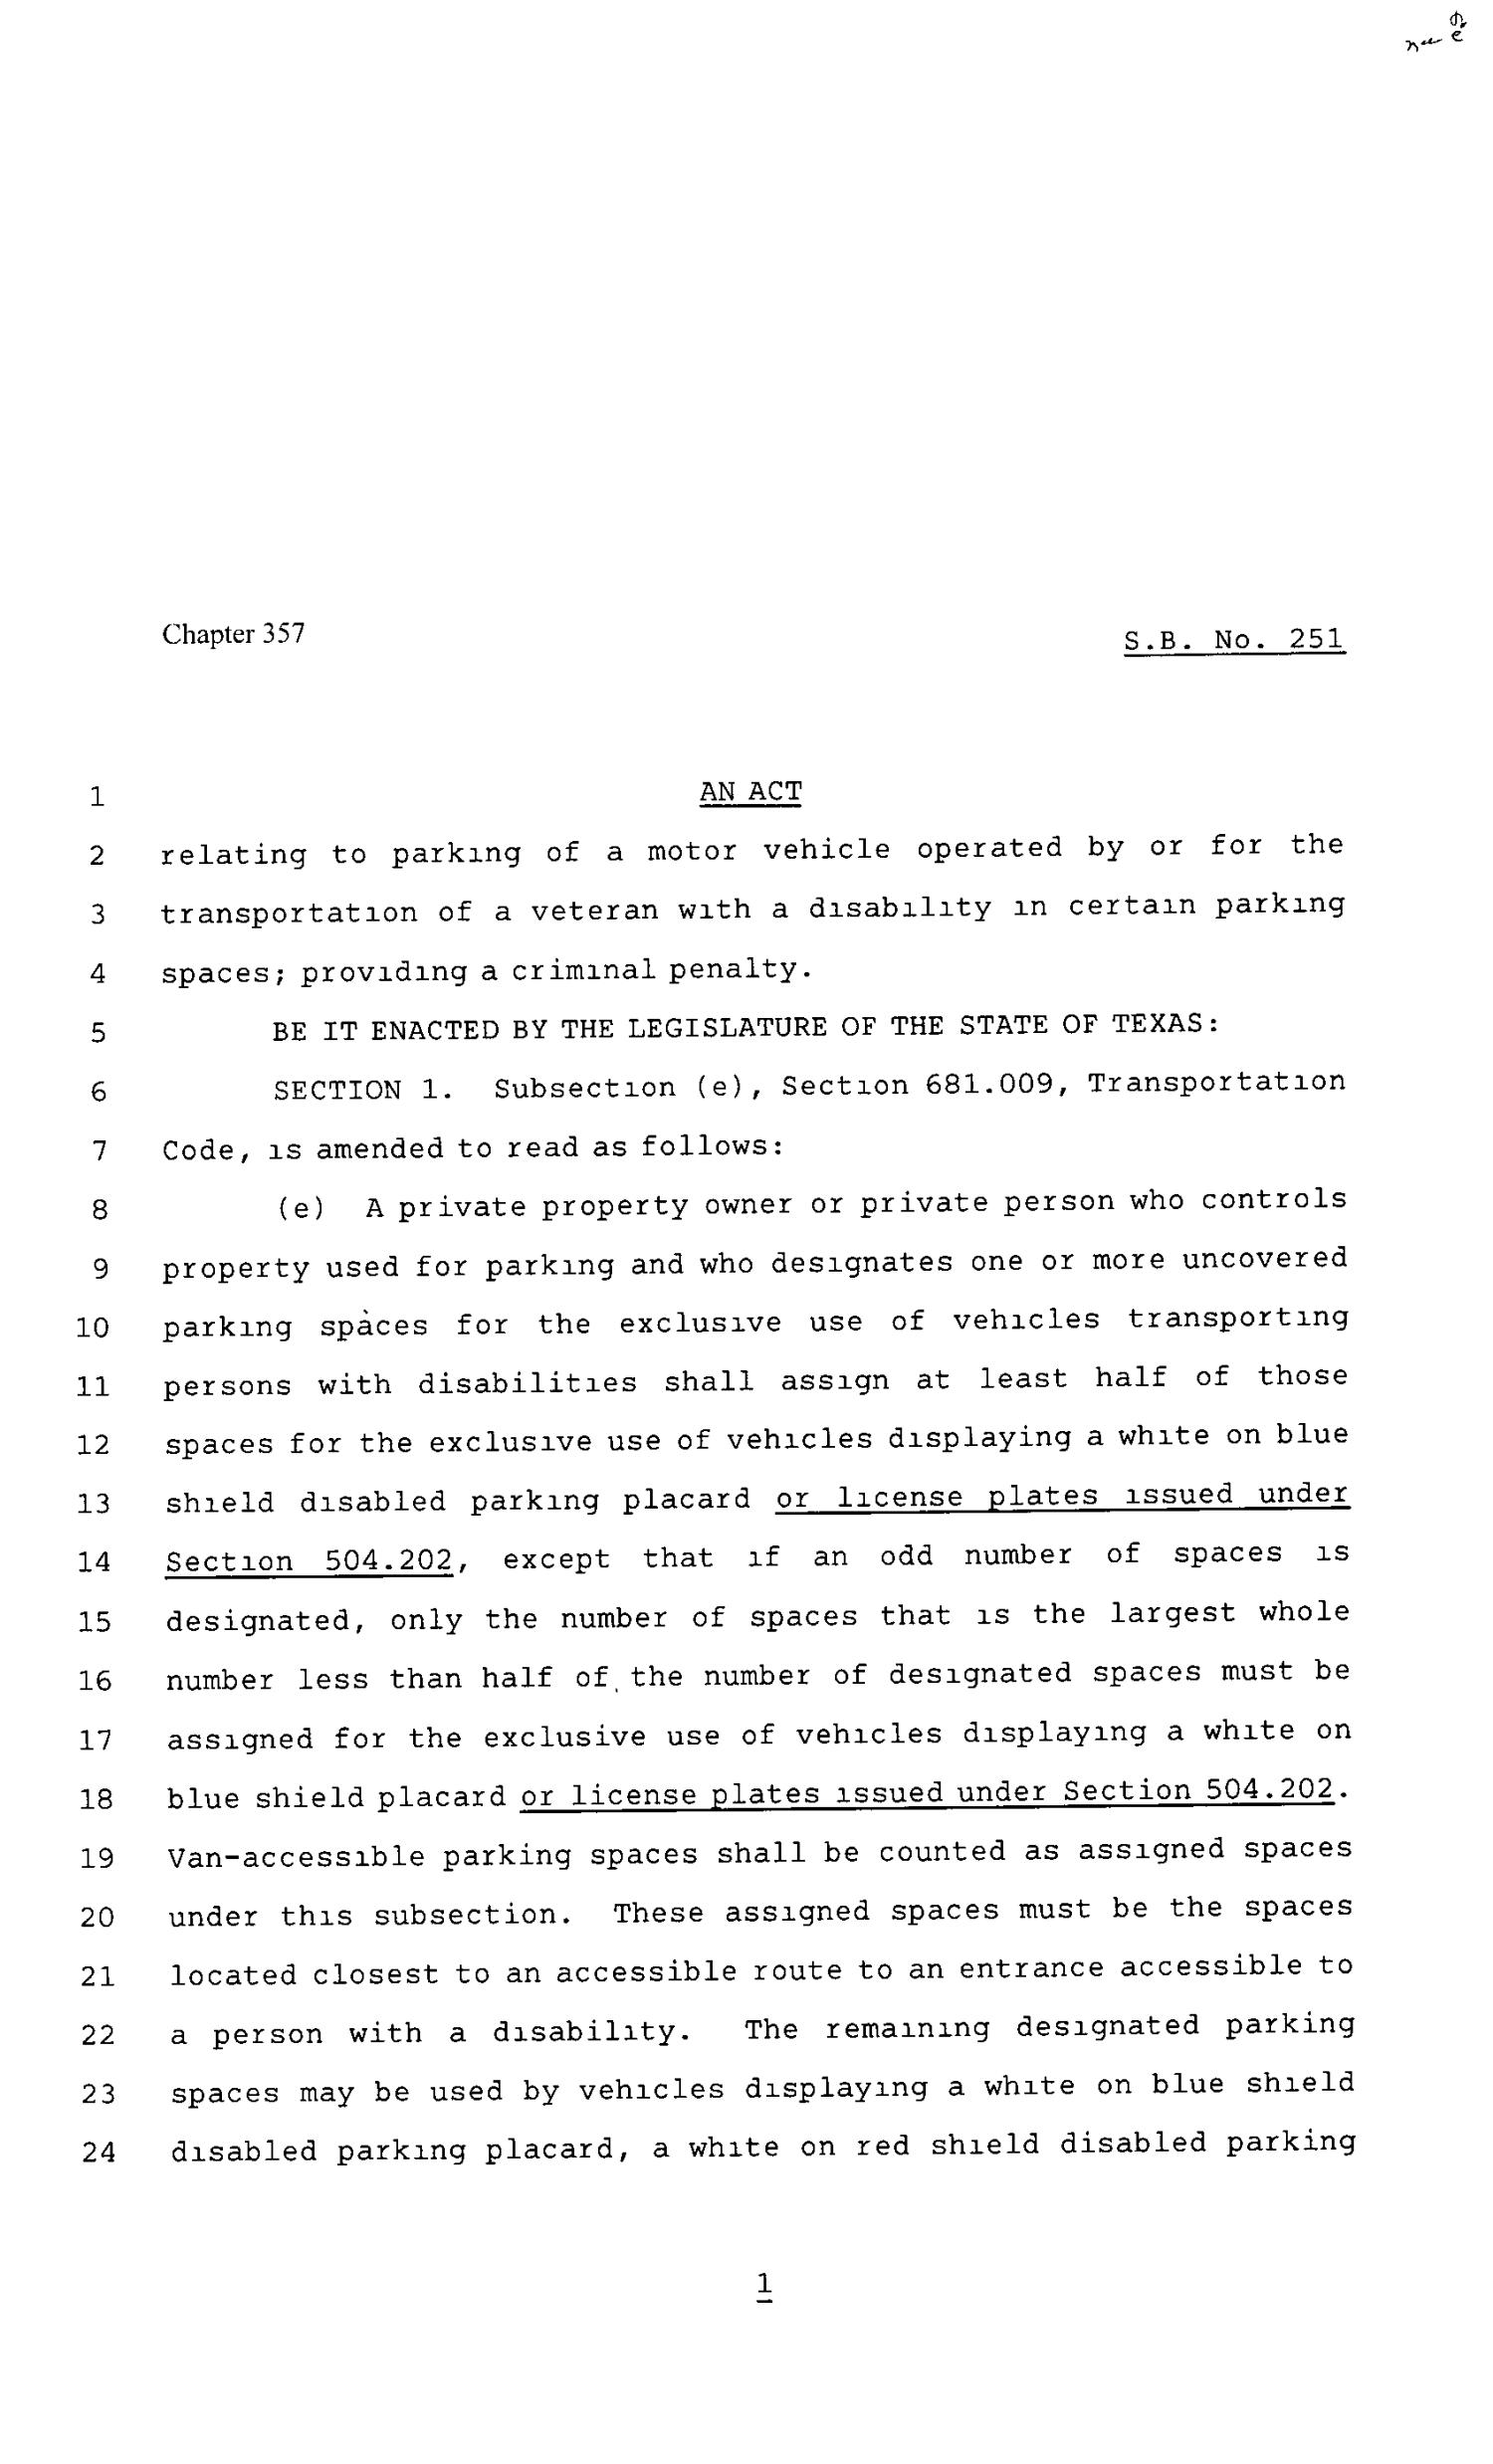 80th Texas Legislature, Regular Session, Senate Bill 251, Chapter 357                                                                                                      [Sequence #]: 1 of 3